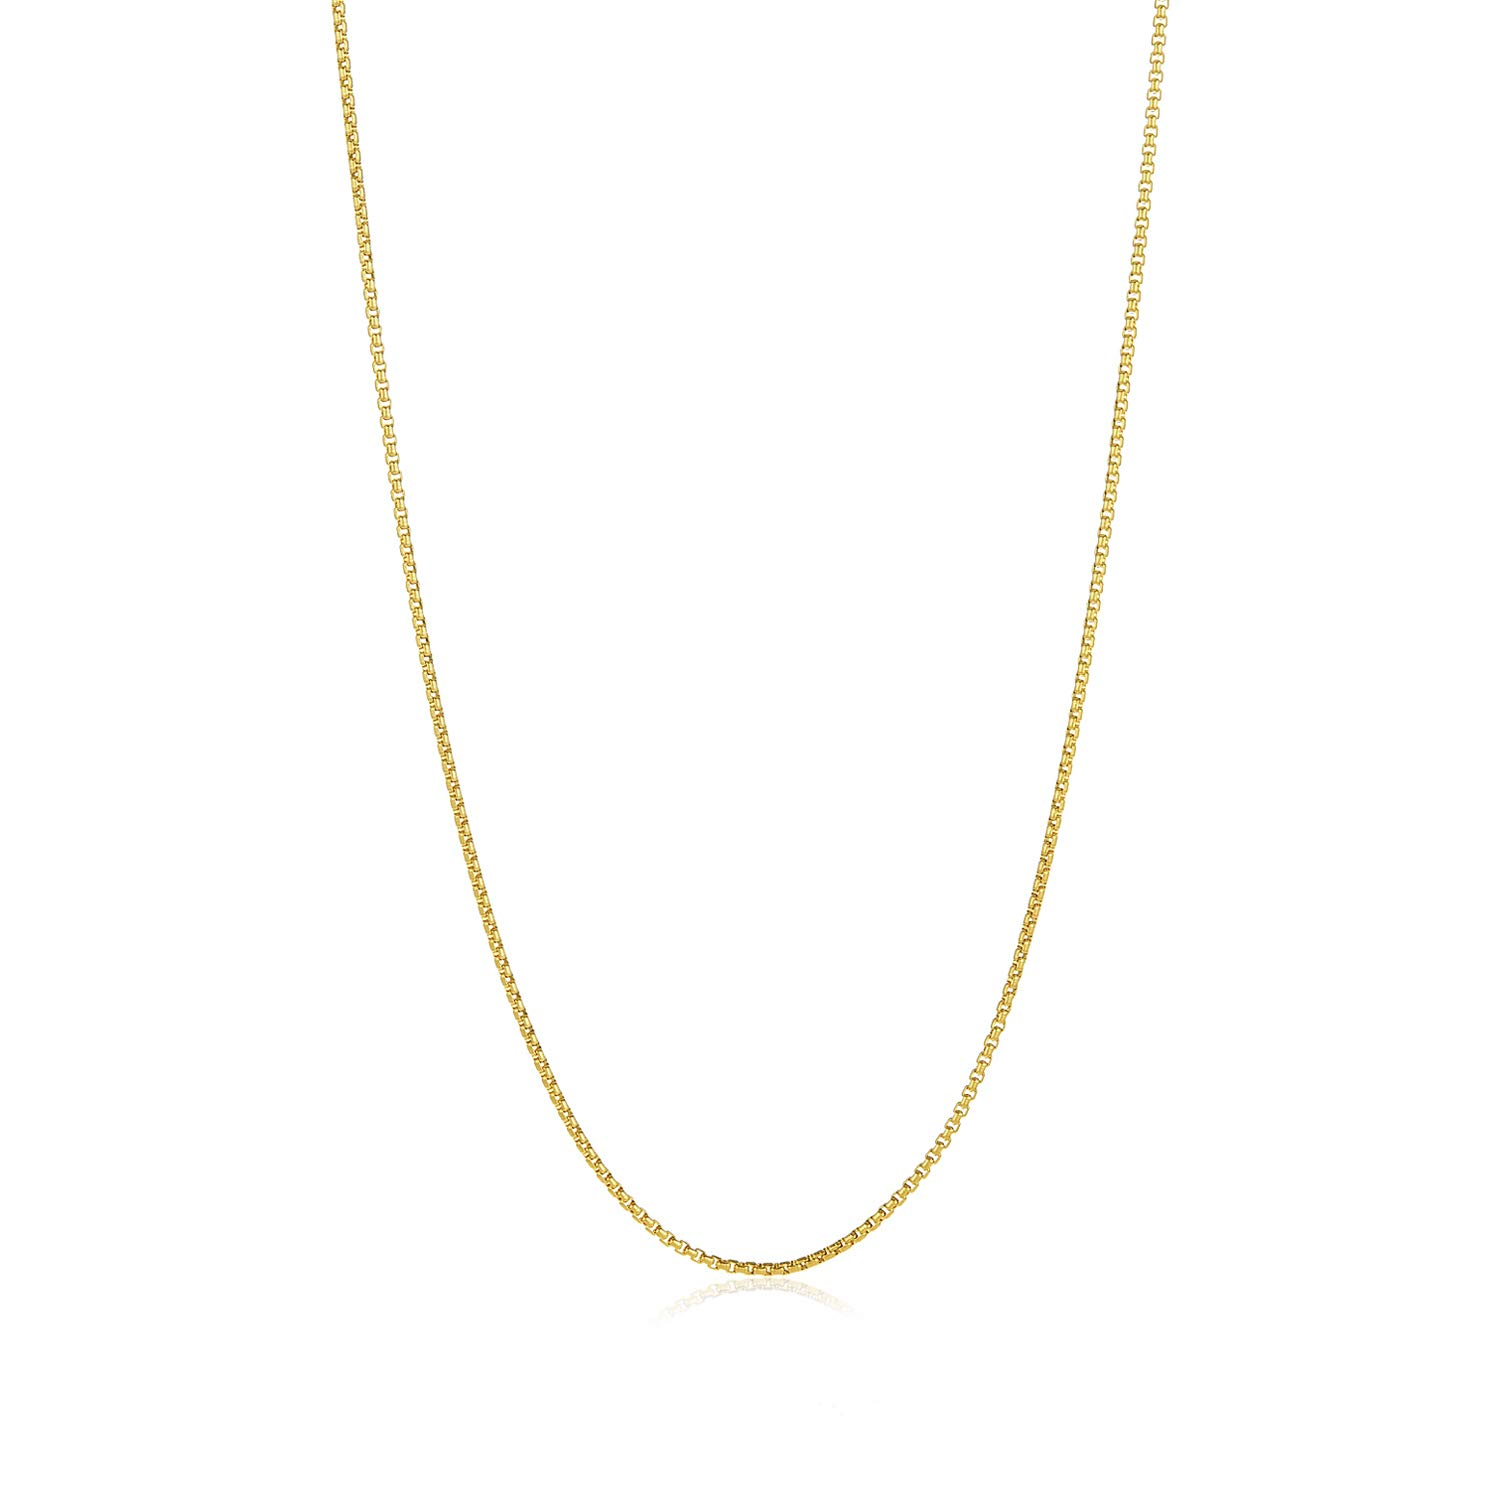 The Bling Factory Small 2mm 14k Gold Plated Stainless Steel Box Chain w//Lobster Claw Clasp 26 inches